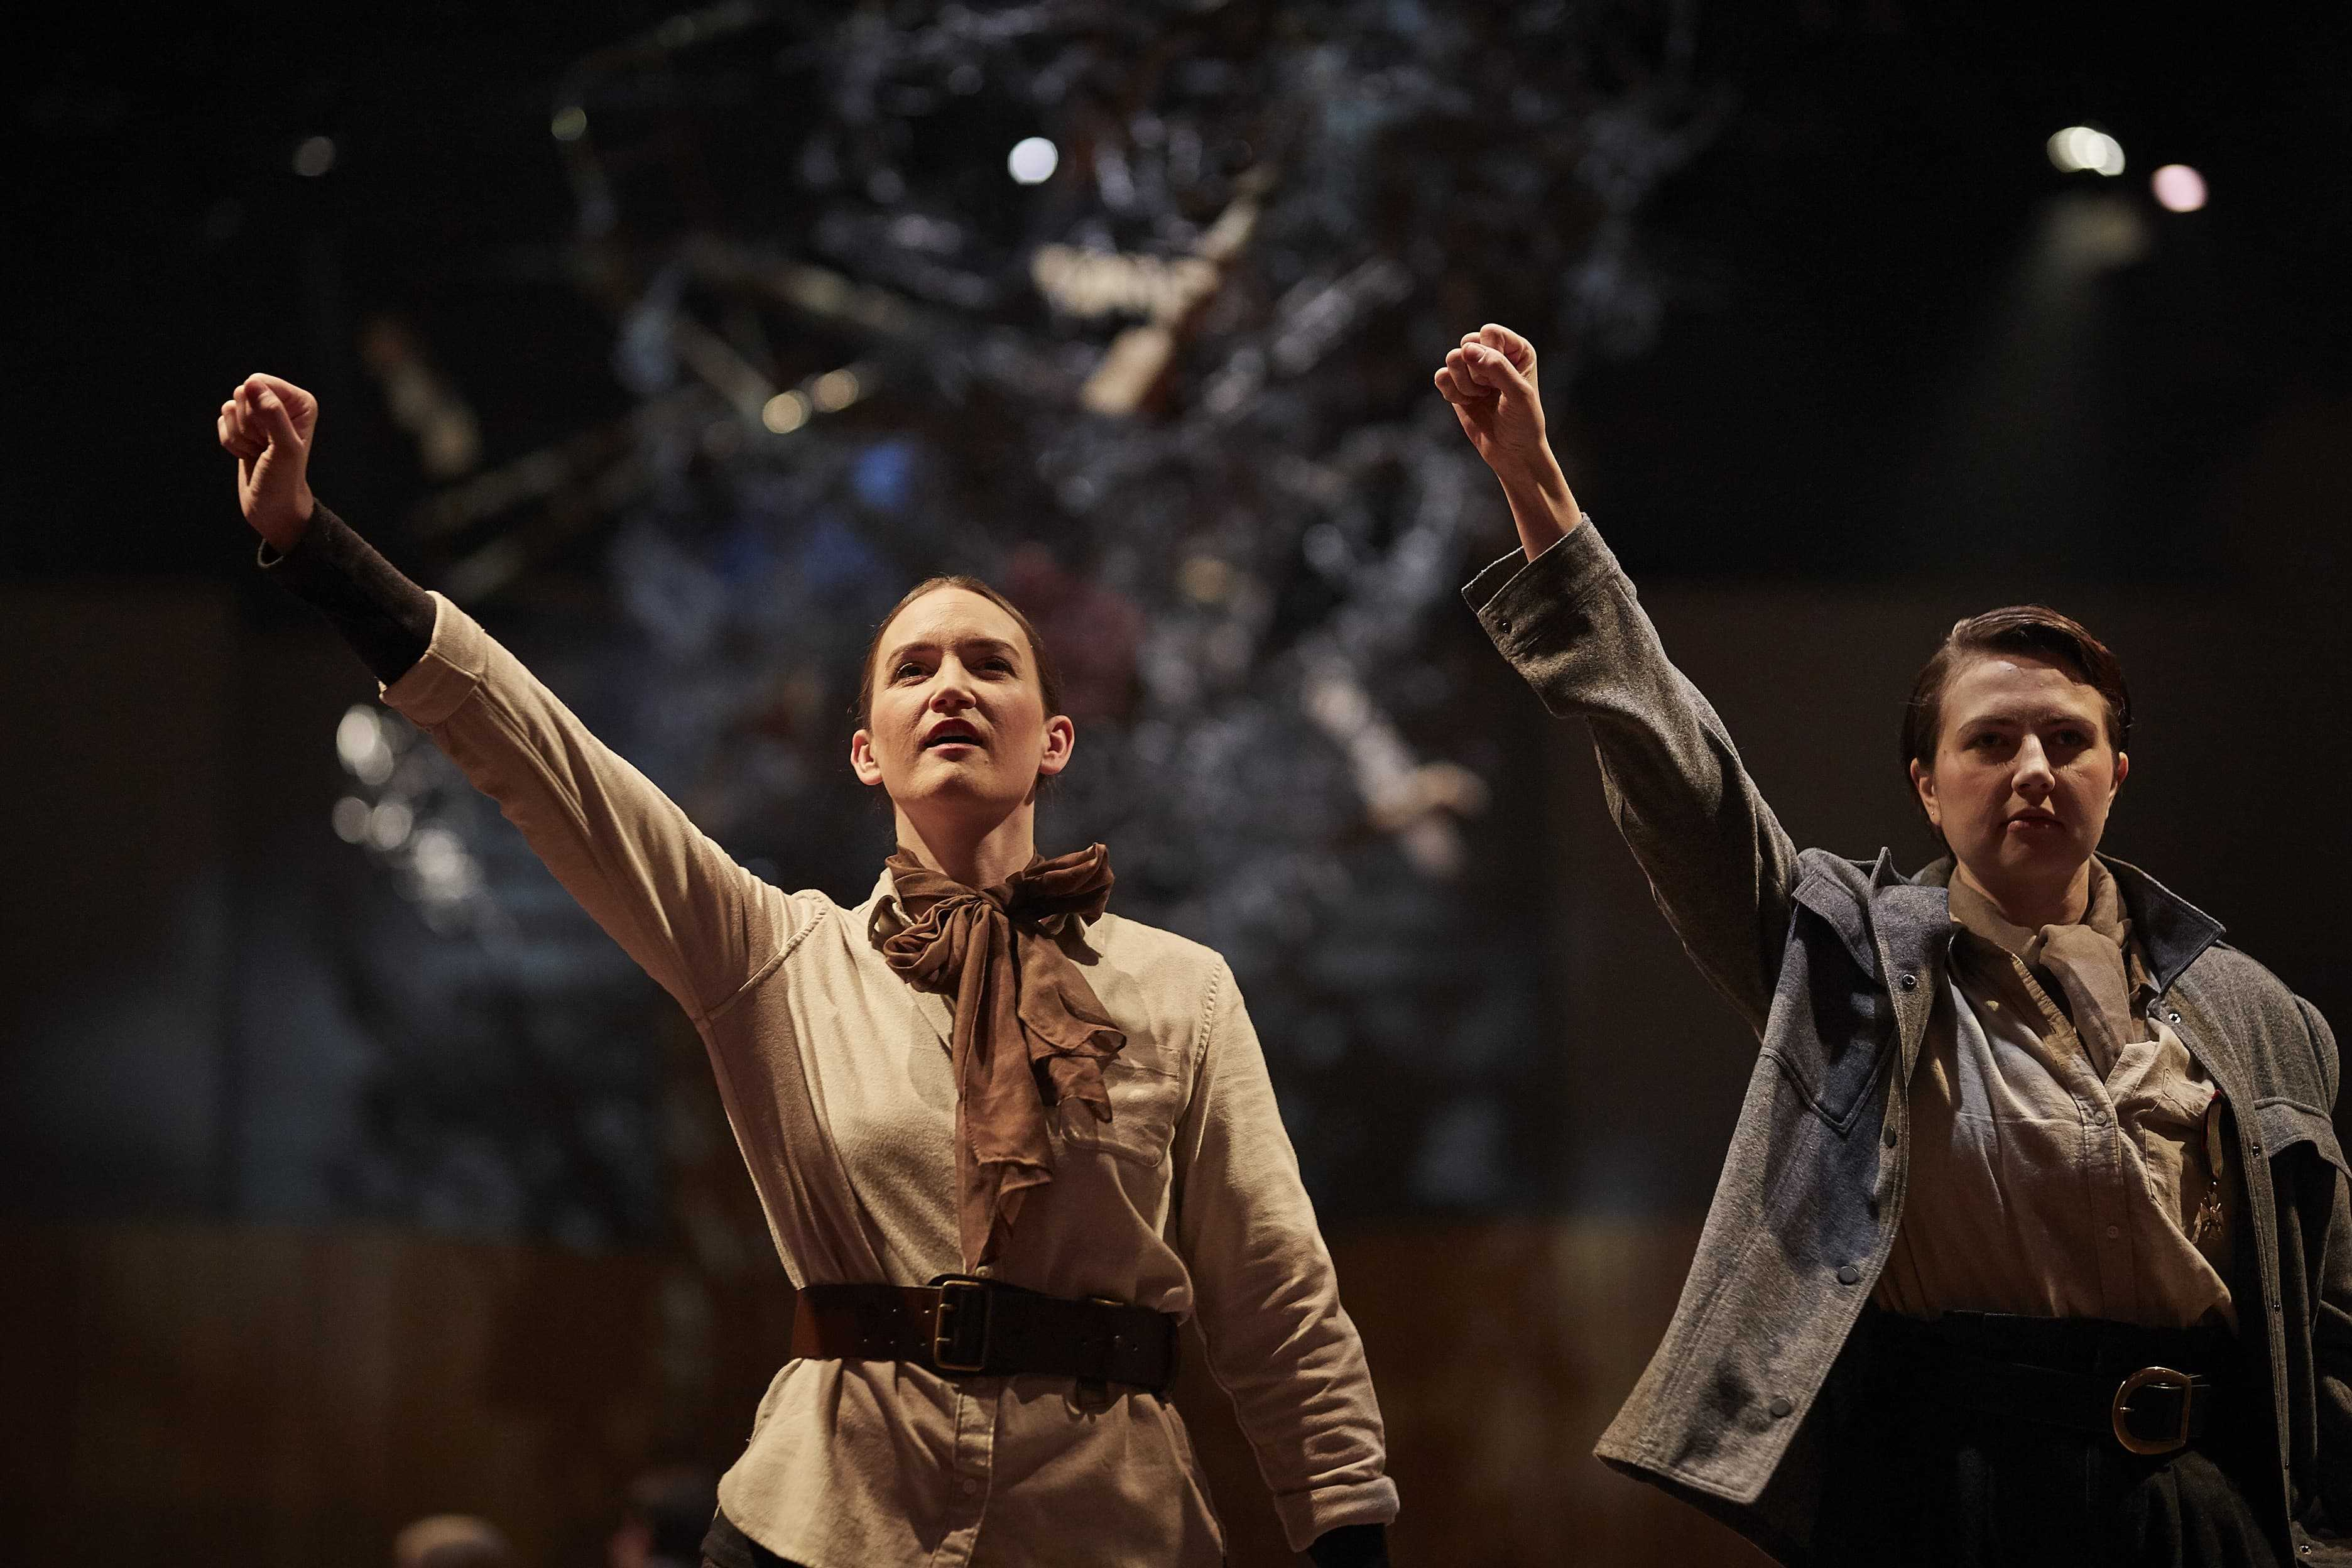 Two women on stage standing side by side with their right arms up punching the air